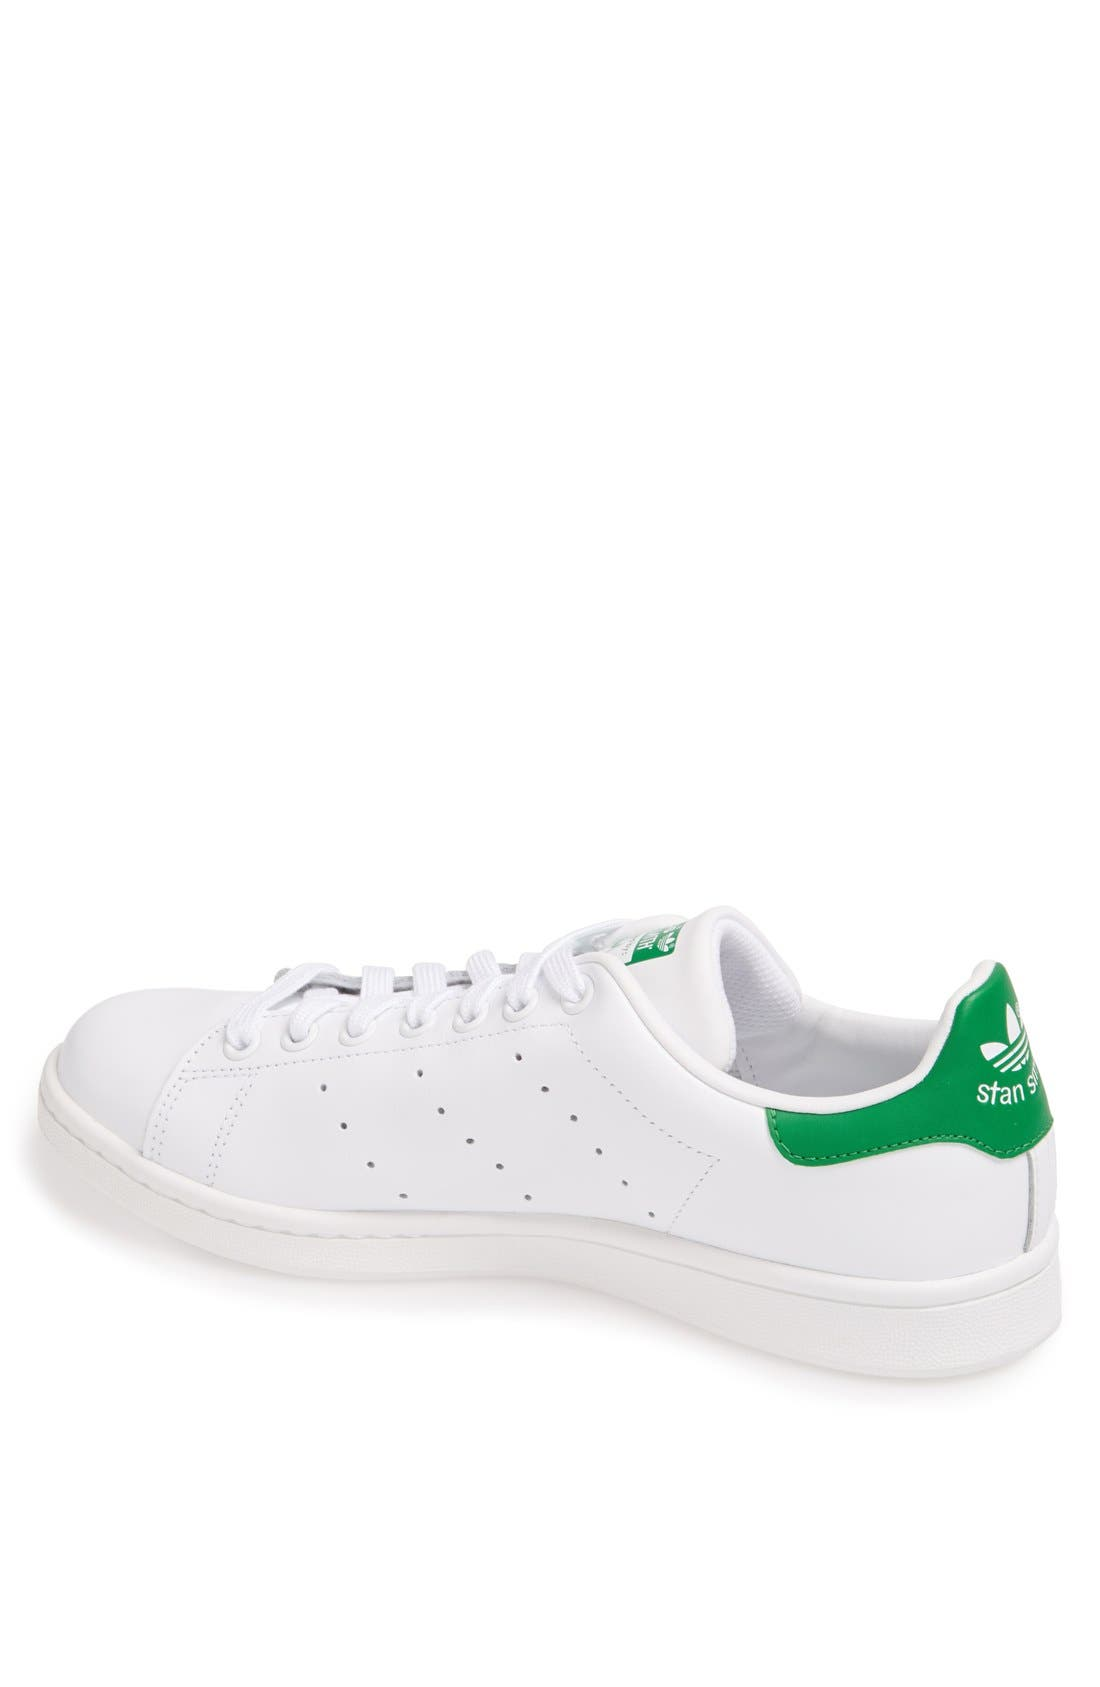 'Stan Smith' Sneaker,                             Alternate thumbnail 2, color,                             Core White/ Green